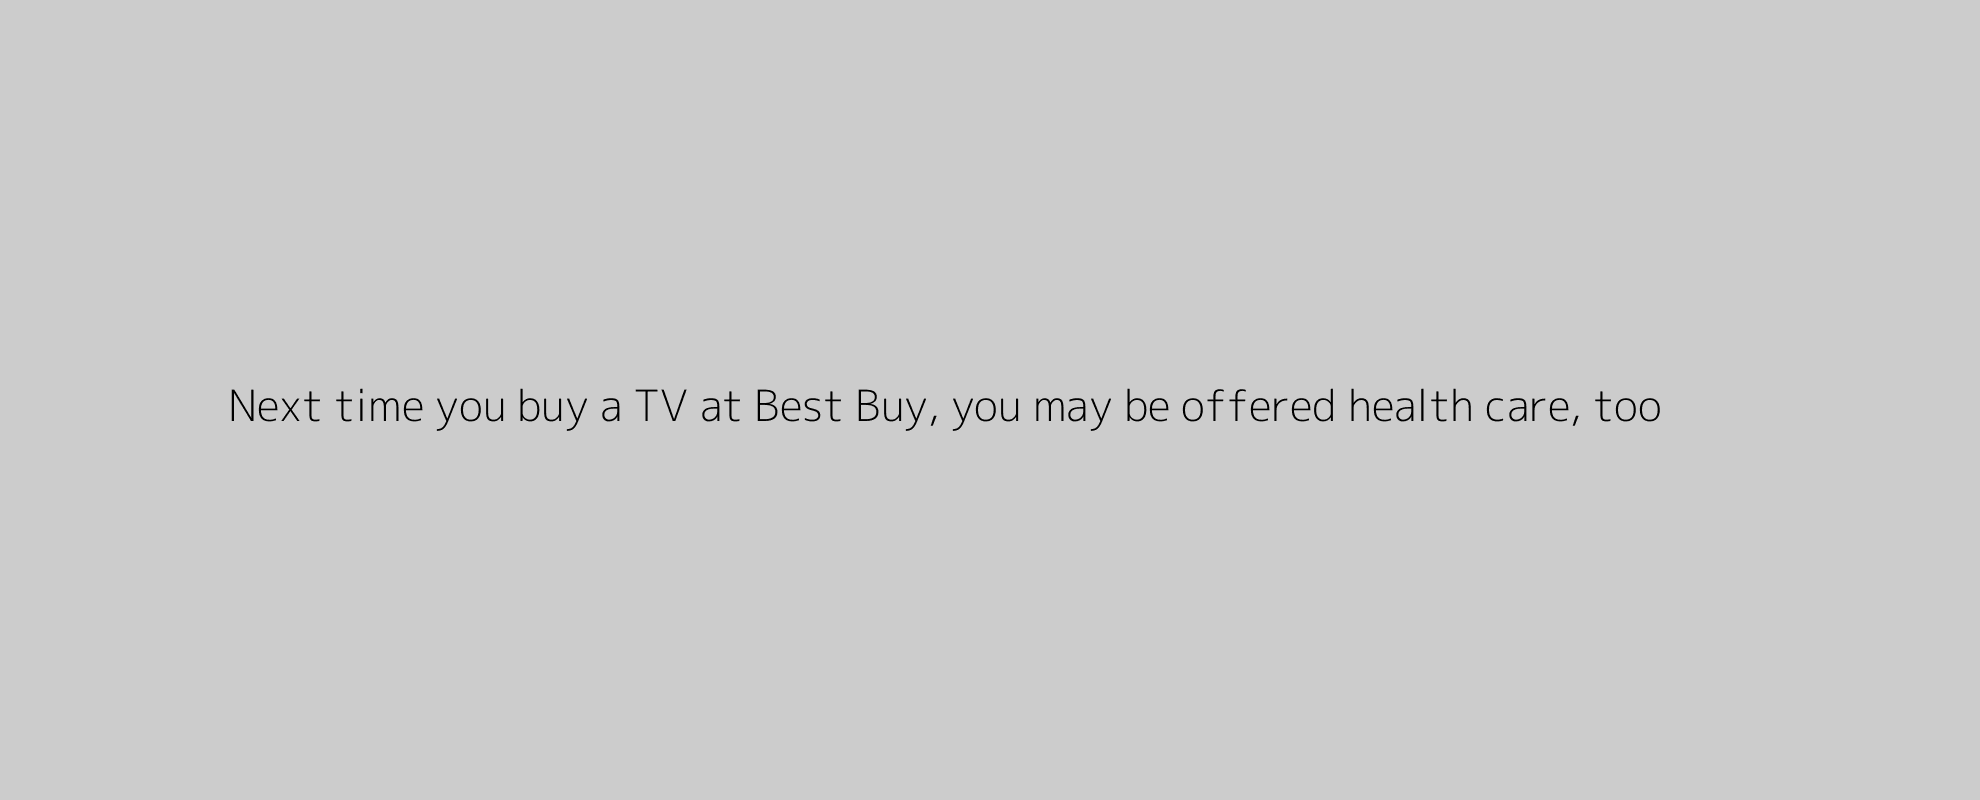 Next time you buy a TV at Best Buy, you may be offered health care, too